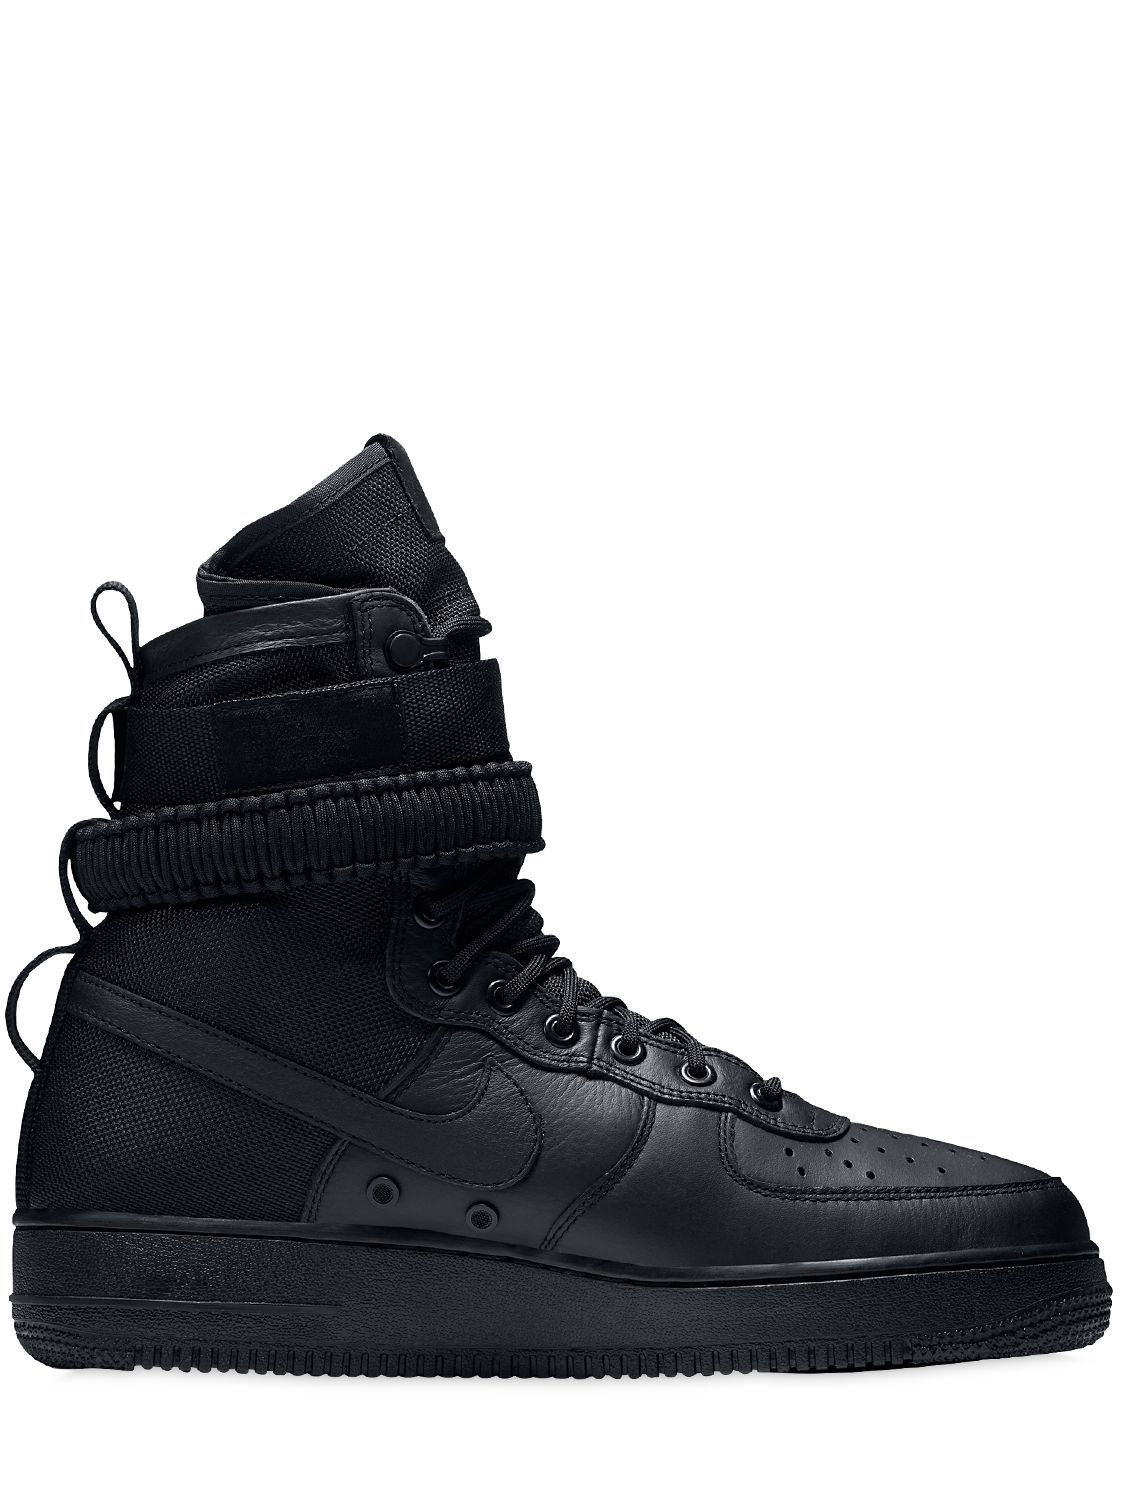 58c9a122380 NIKE SF AIR FORCE 1 HIGH TOP SNEAKERS.  nike  shoes